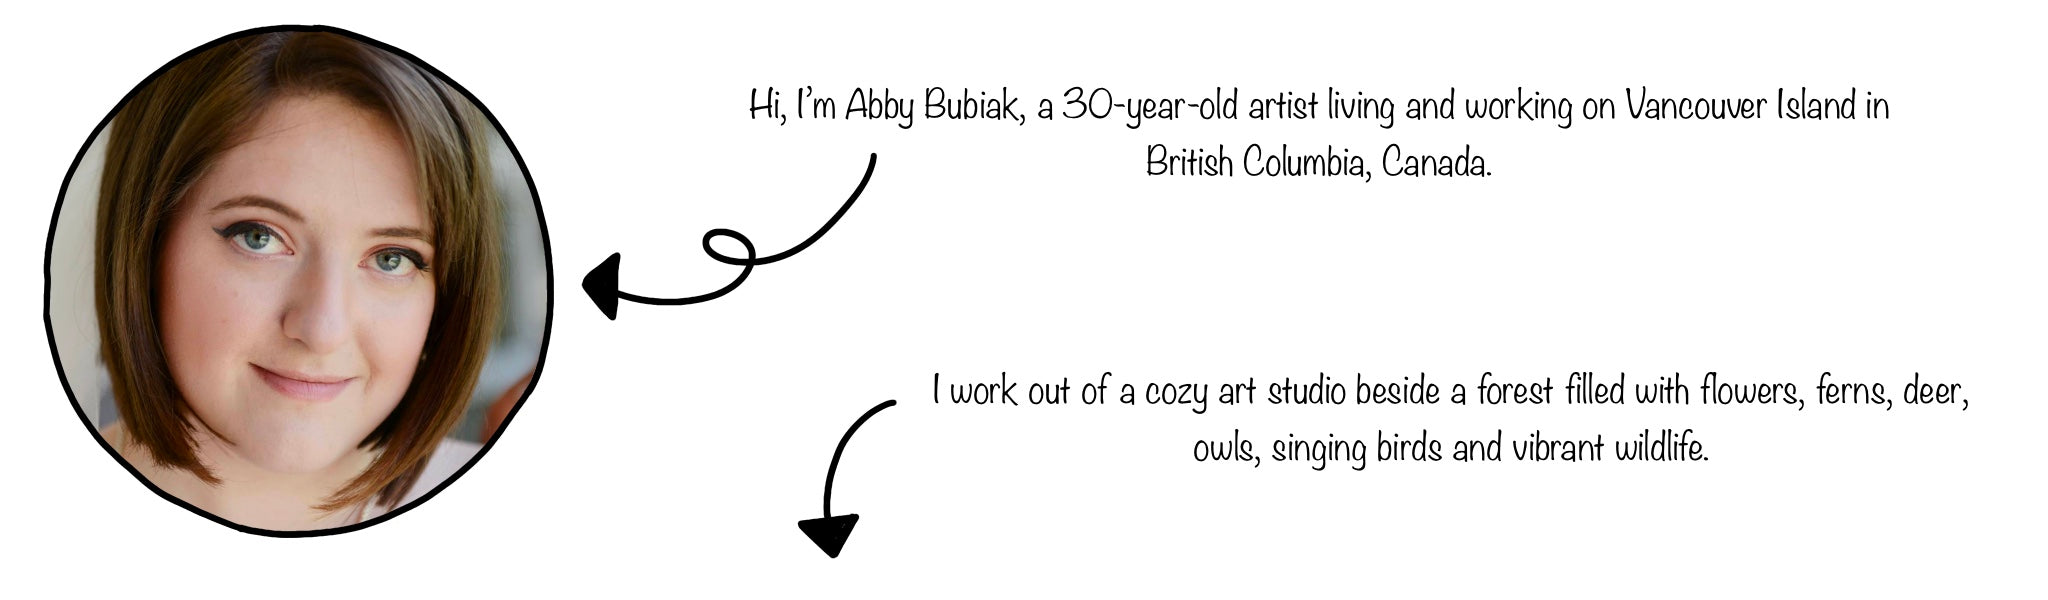 Abby Bubiak, an artist living on Vancouver Island, British Columbia, Canada. She works out of a cozy art studio beside a forest with flowers, ferns, deer, owls, singing birds and vibrant wildlife.